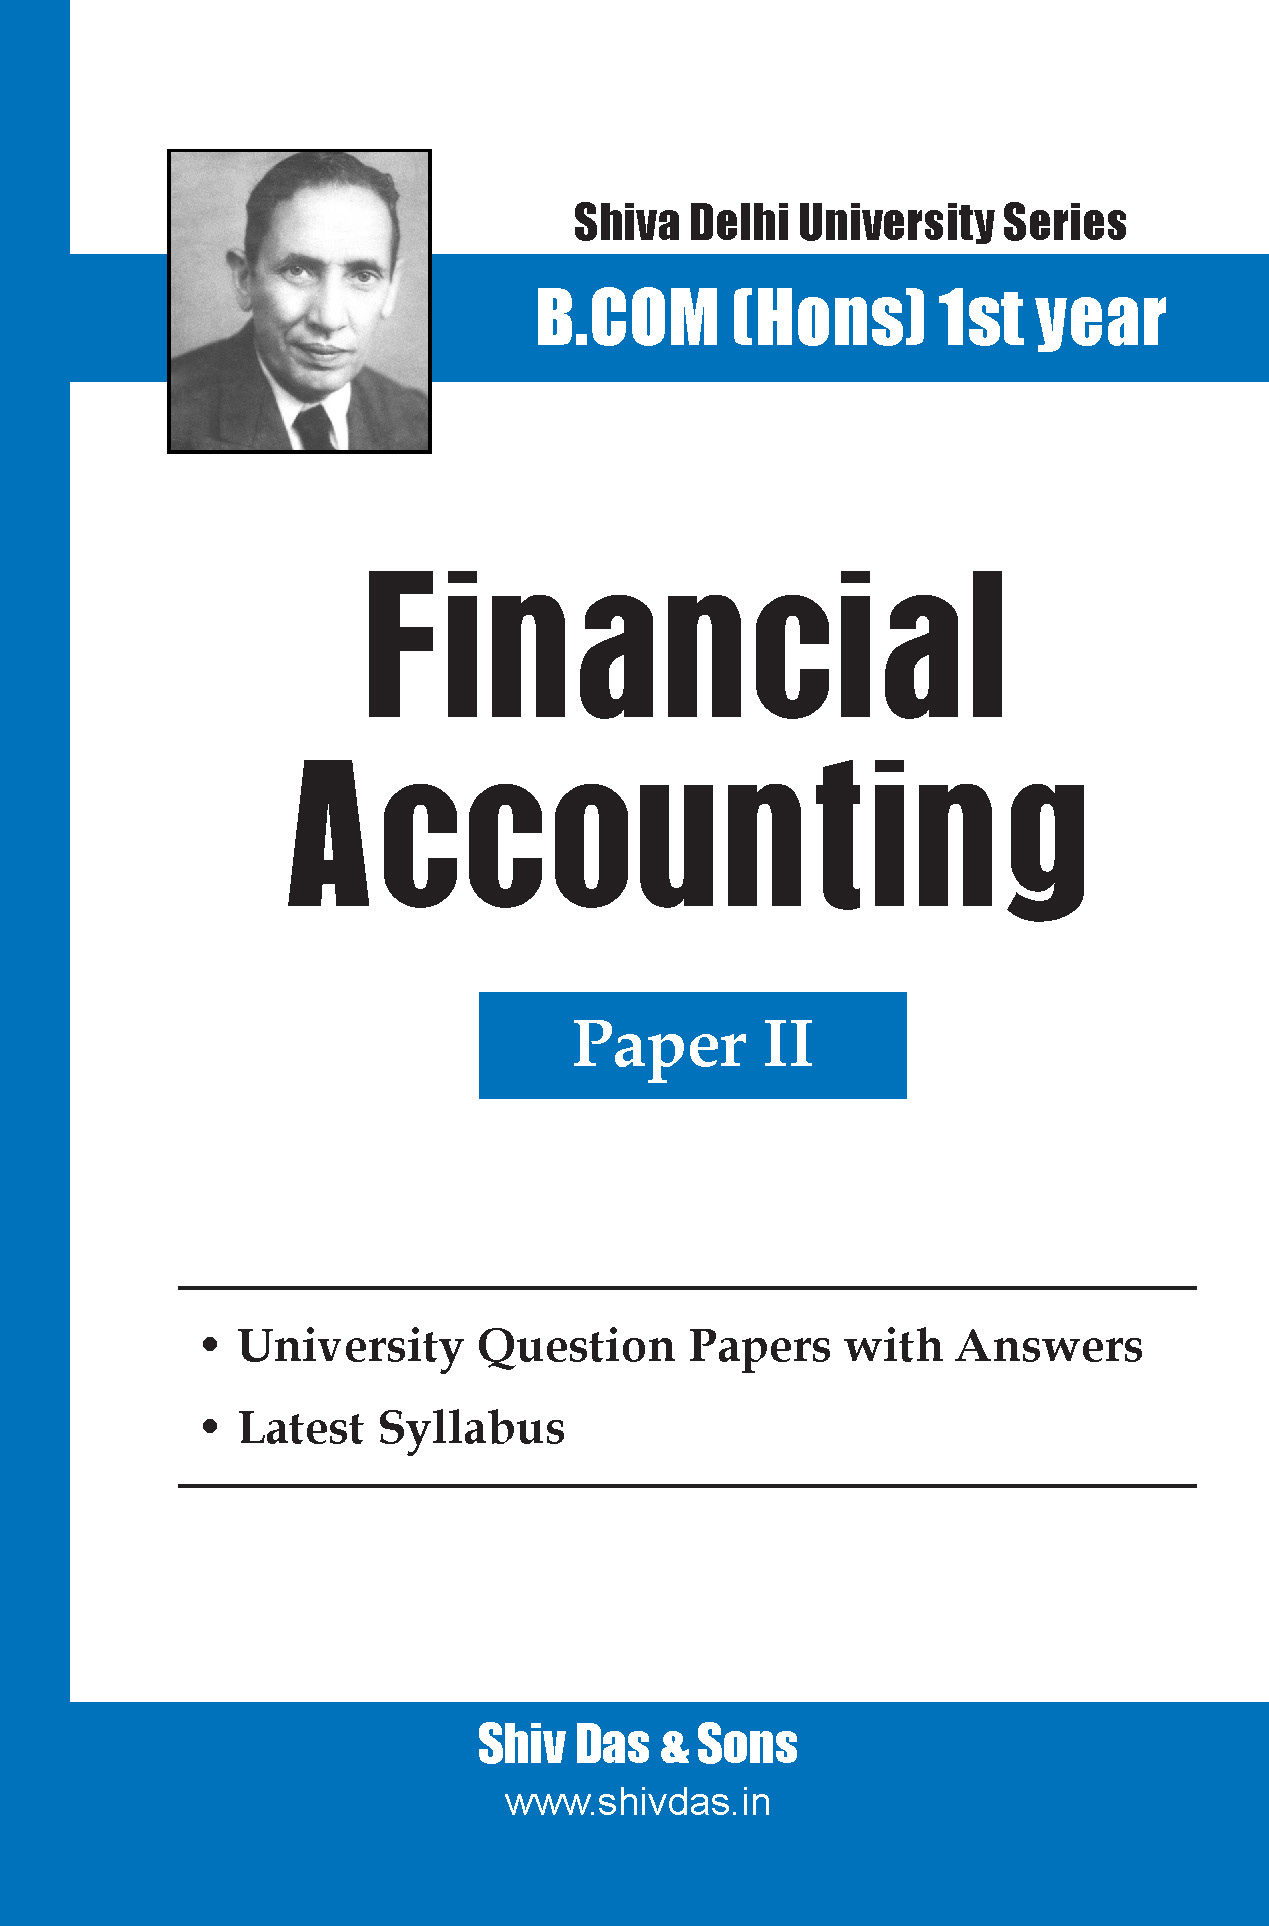 Financial Accounting for B.Com Hons SOL/External 1st Year